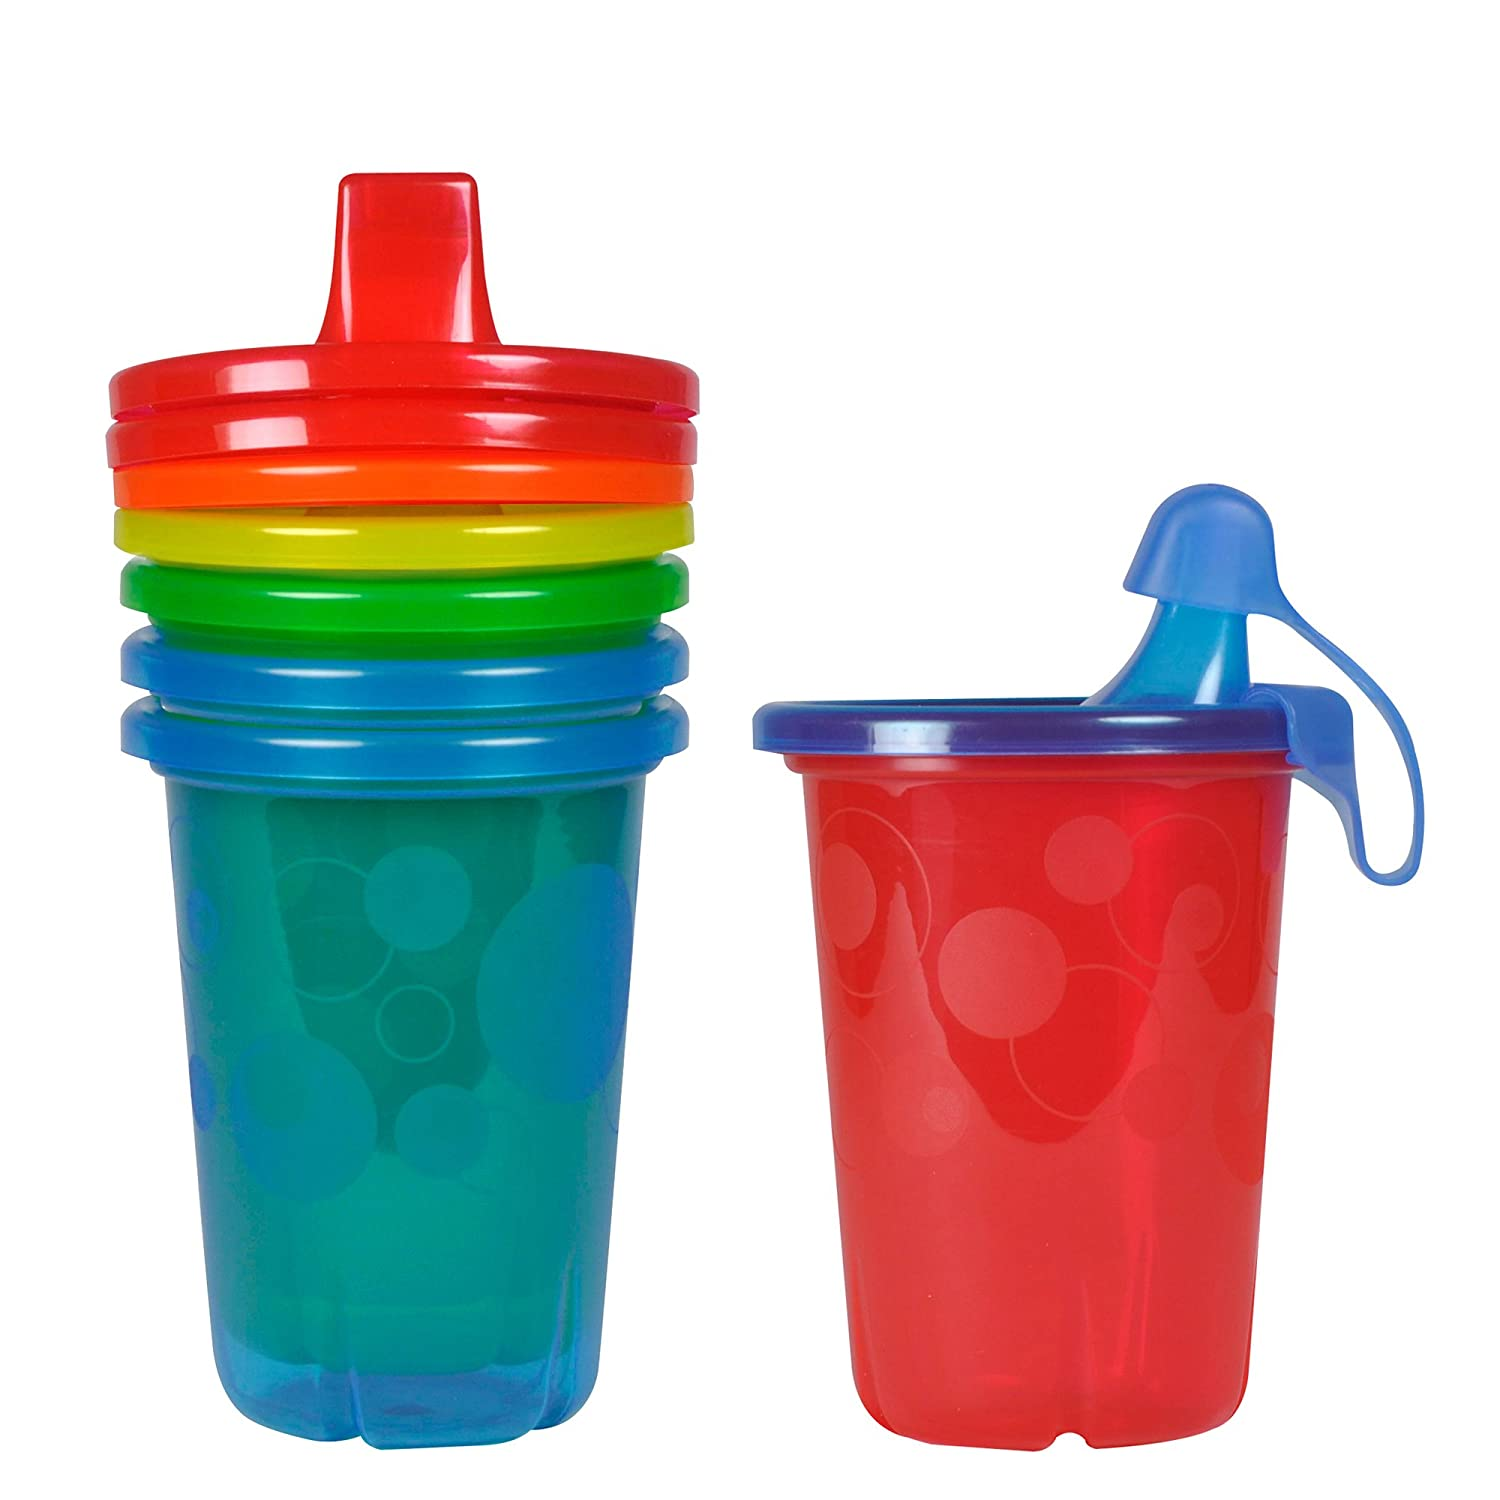 amazon add on items markers sippy cups and face wipes save a la mode. Black Bedroom Furniture Sets. Home Design Ideas